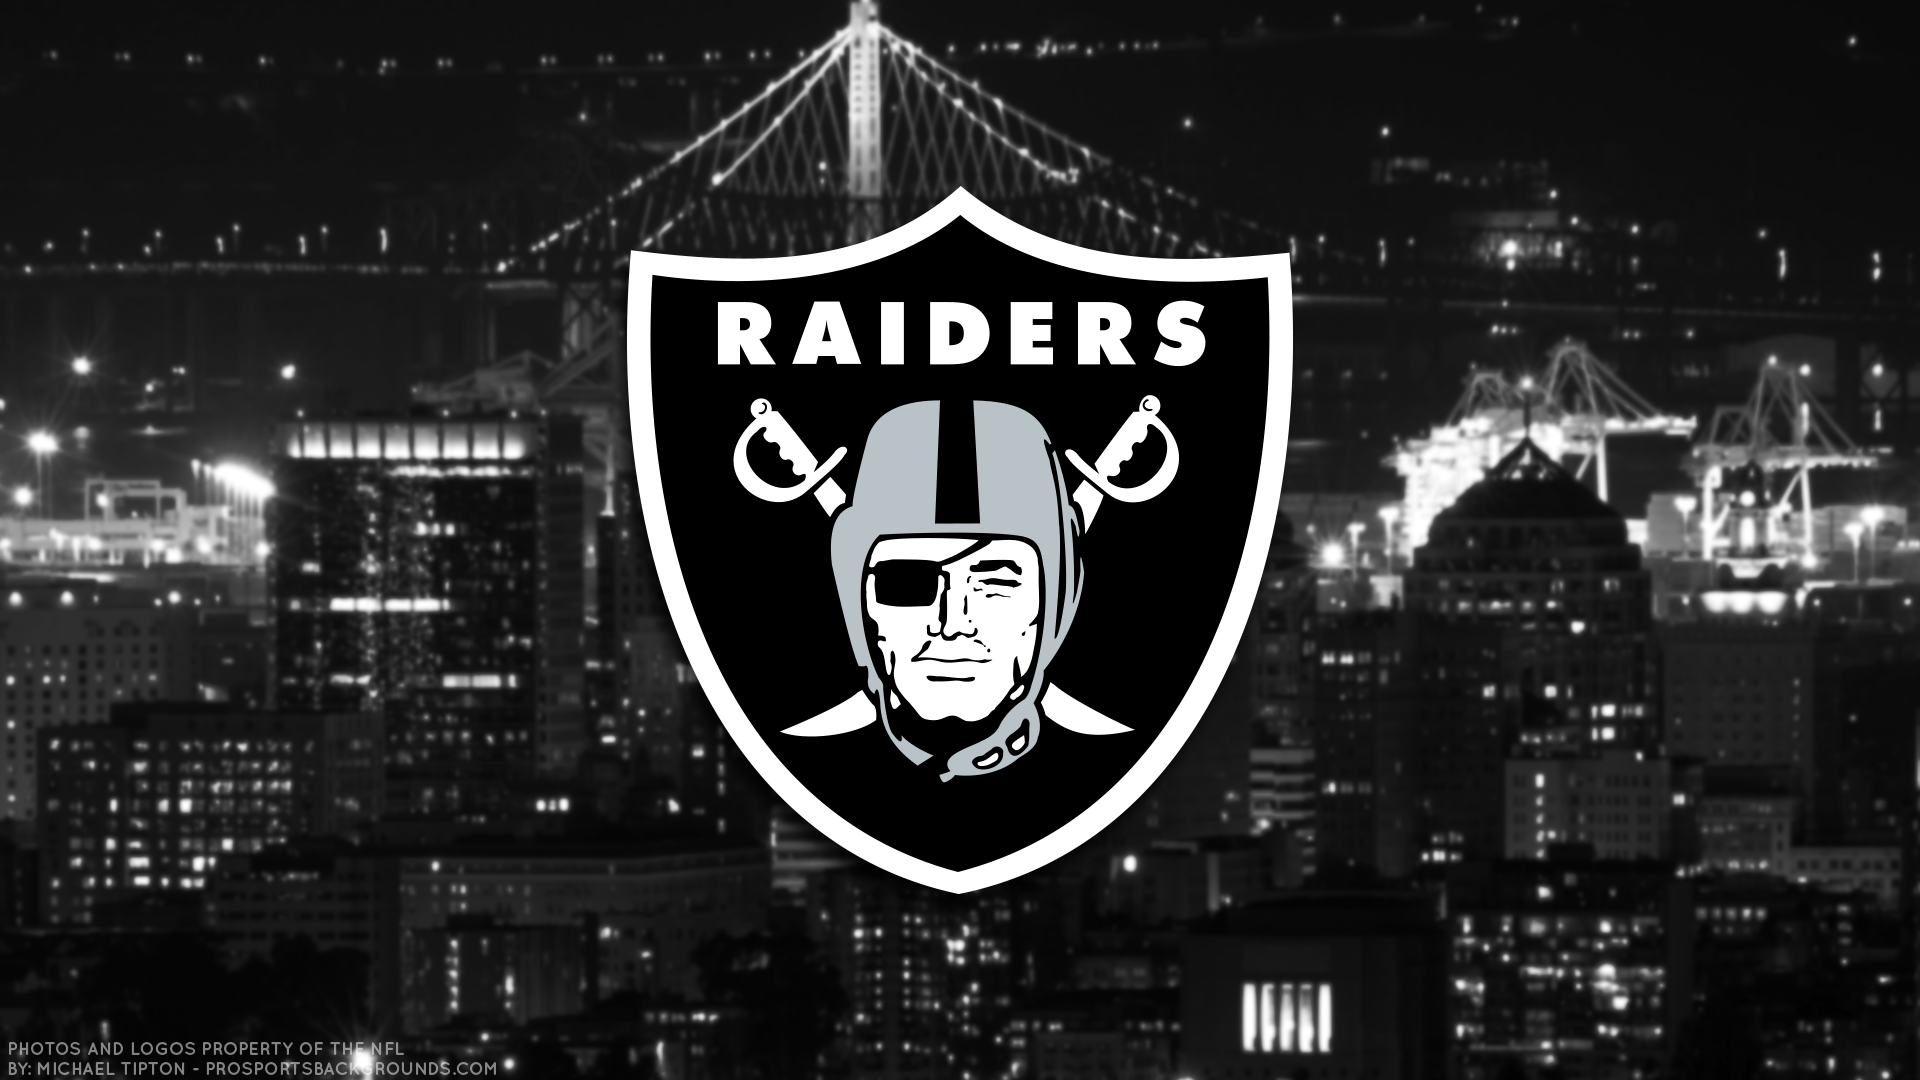 Oakland Raiders Wallpapers 4K